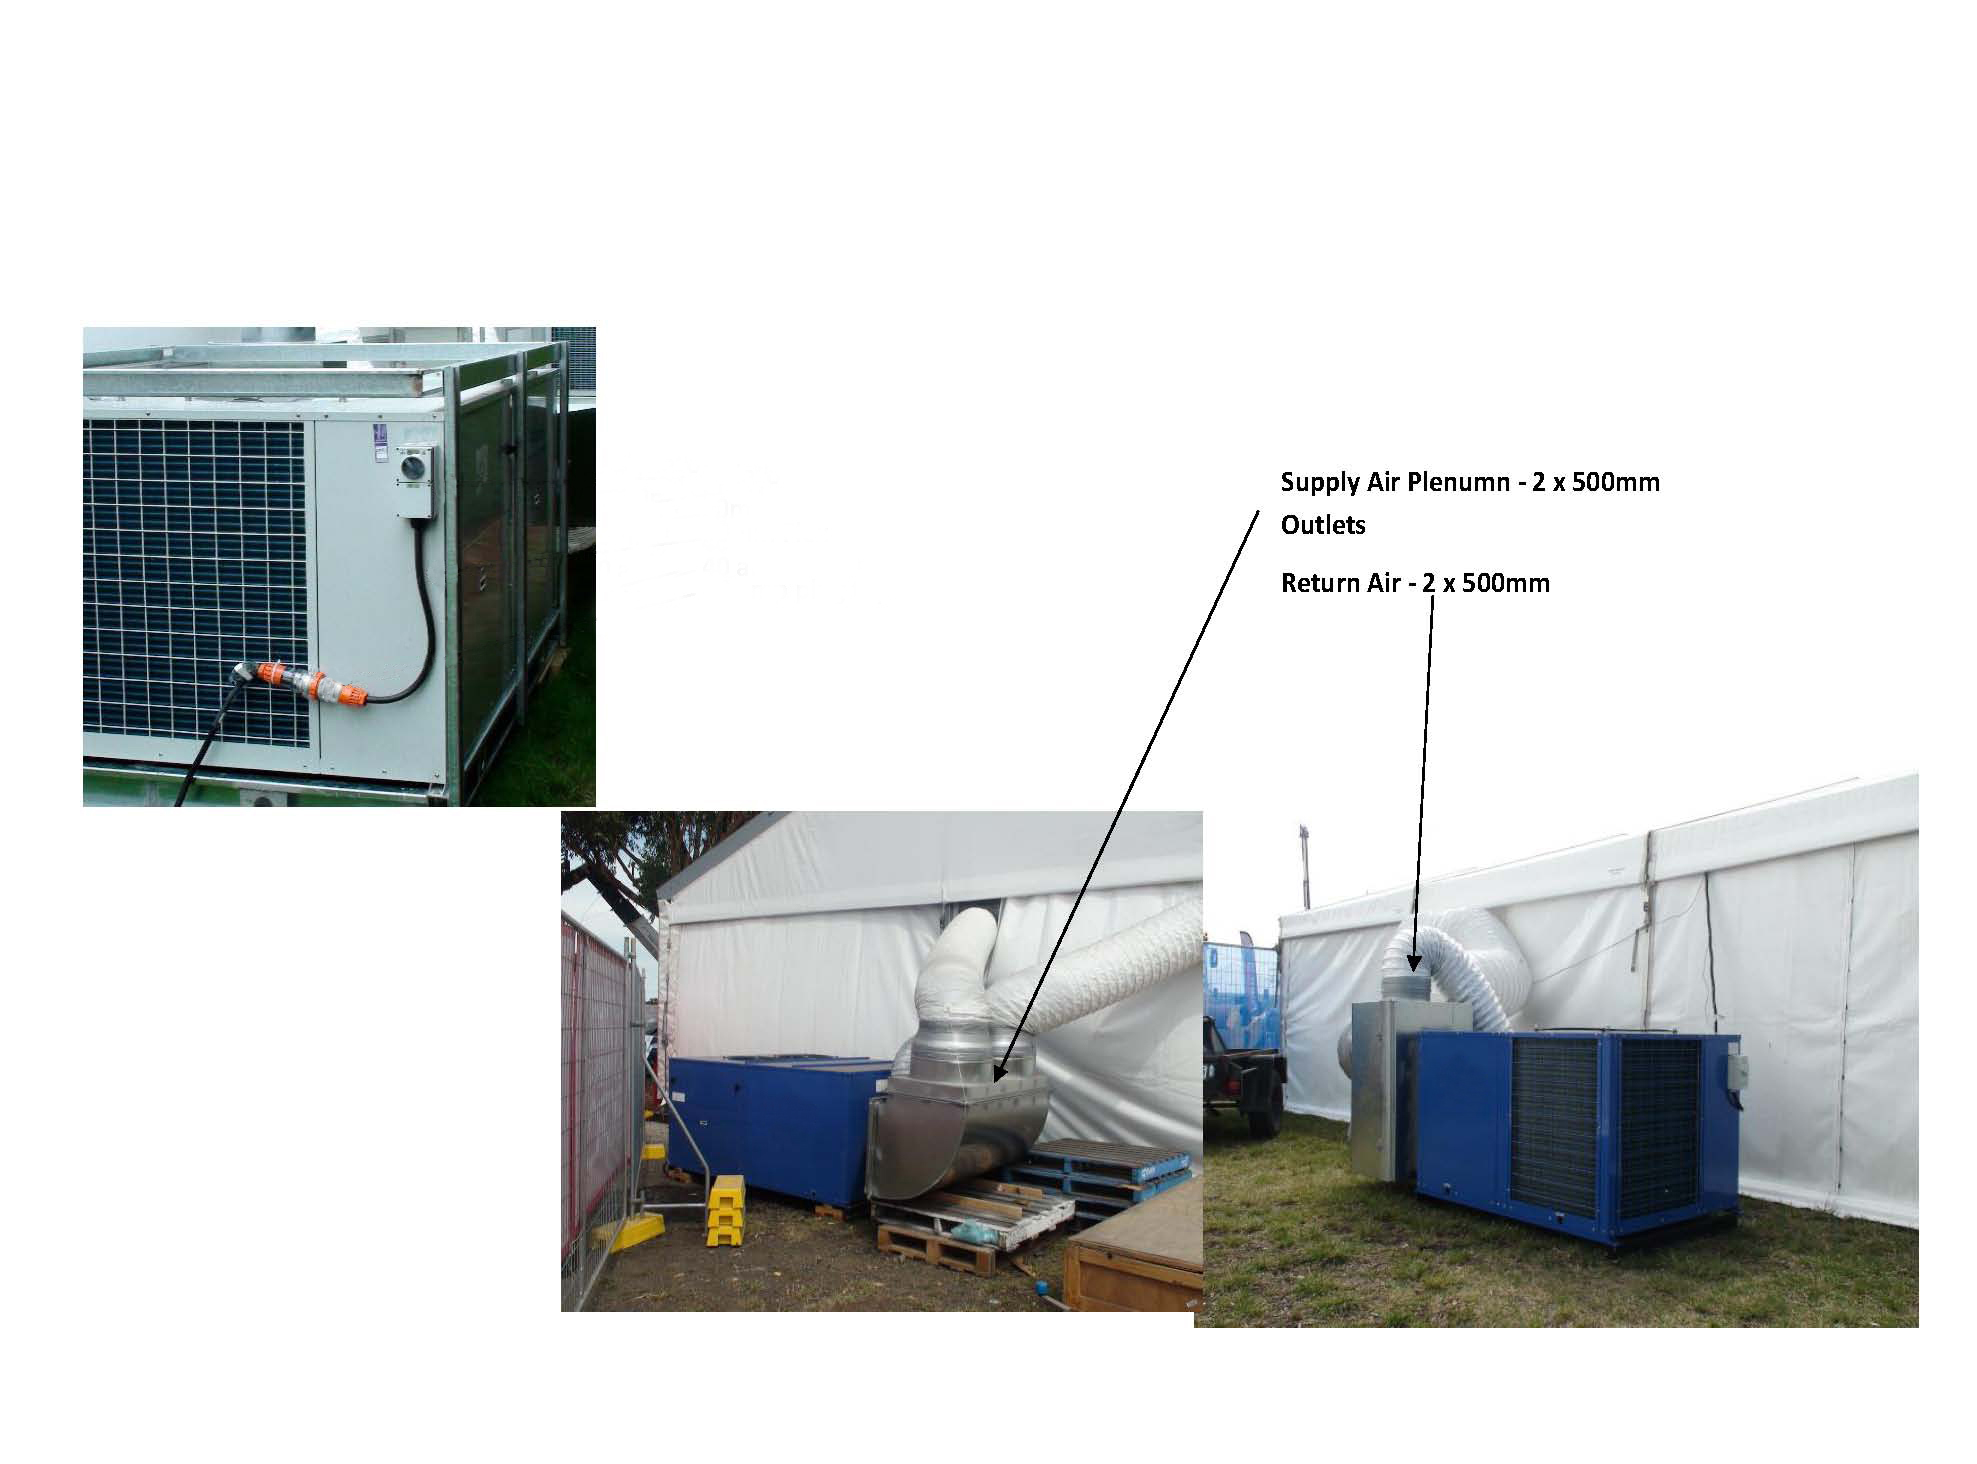 Installation of Portable Tent Packaged Air Conditioner